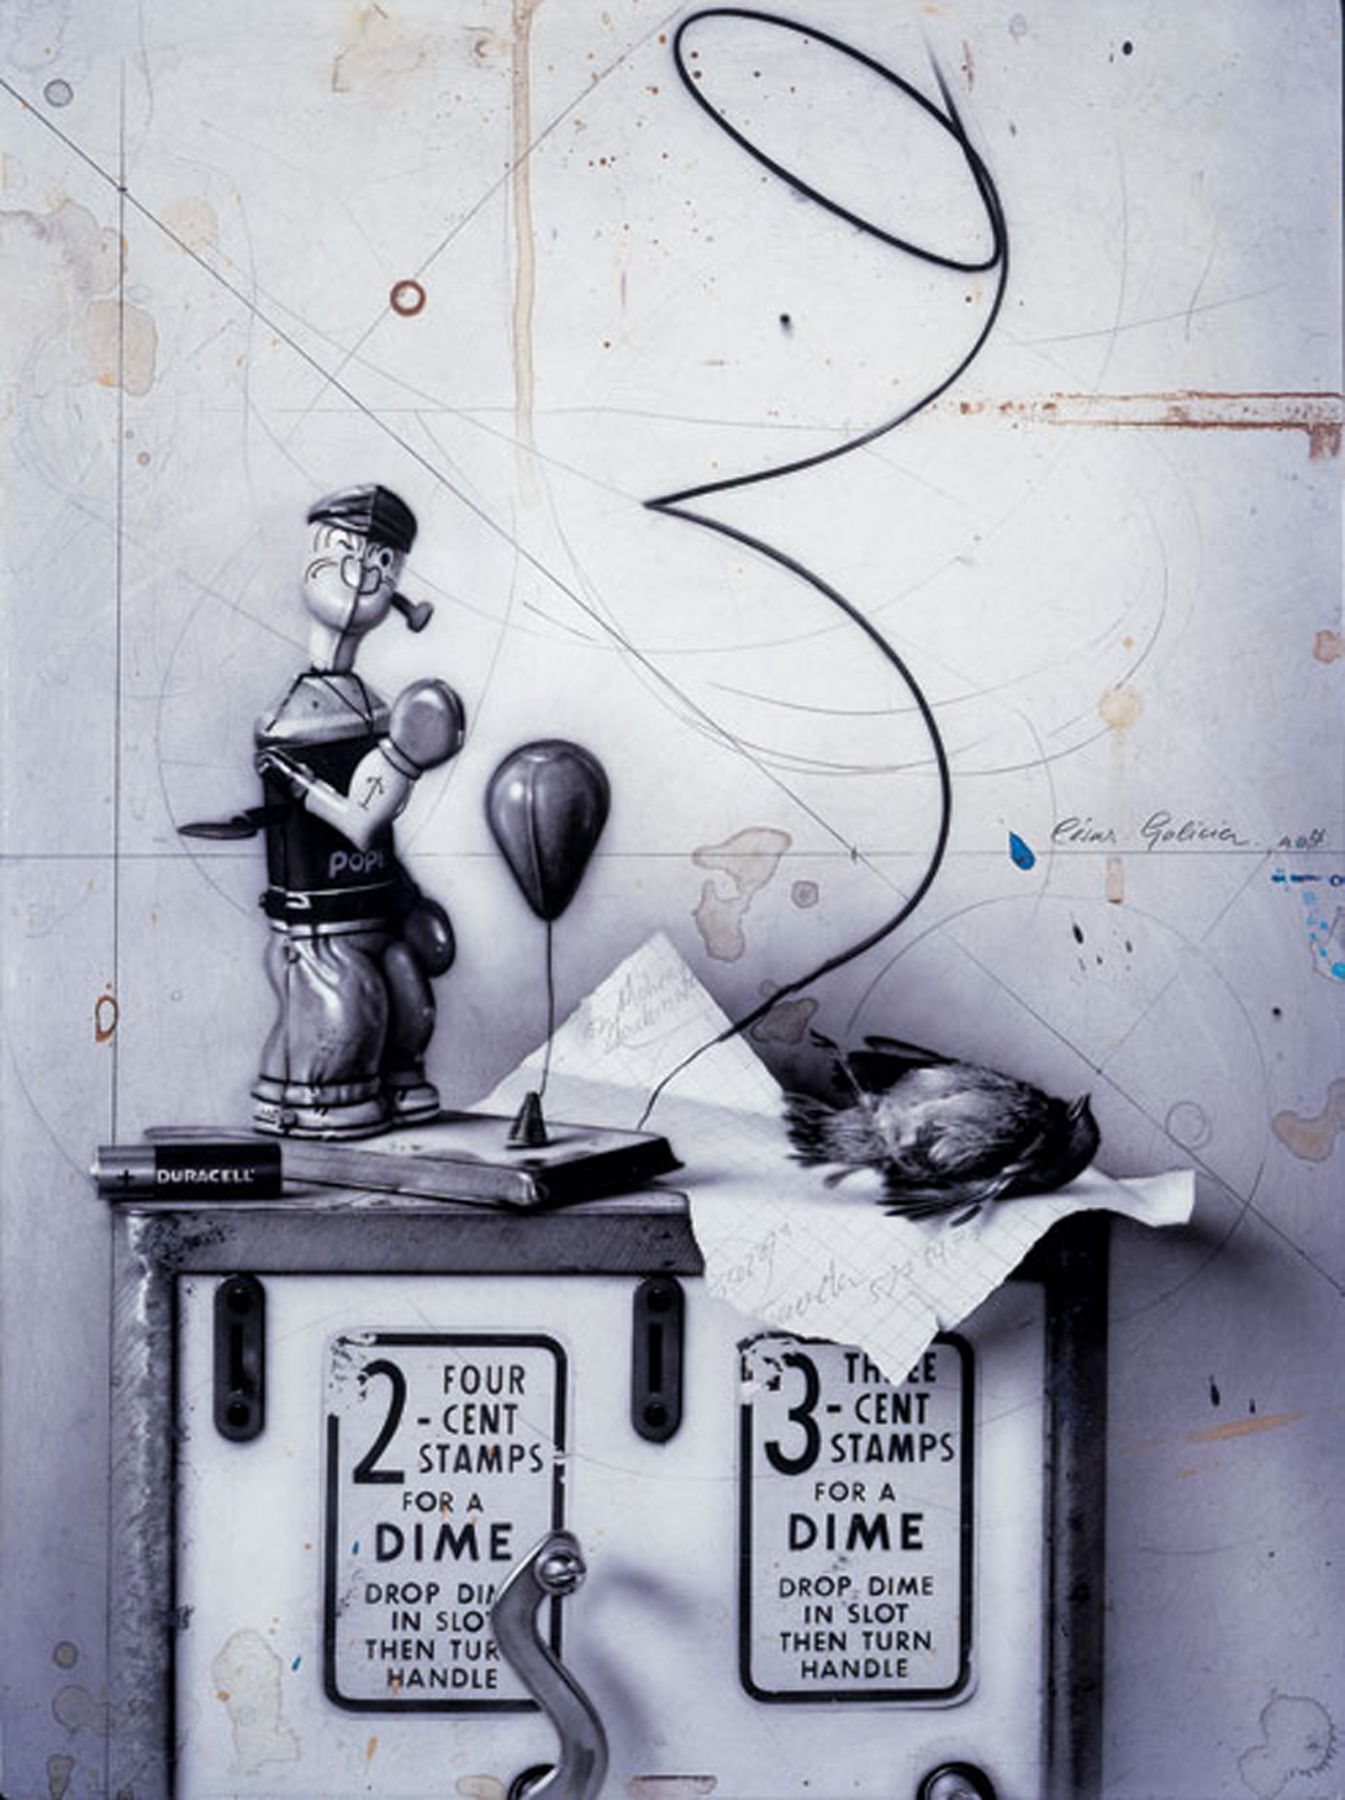 César Galicia, Bodegón con Popeye, 1999, mixed media on board 18 1/2 x 13 3/4 inches